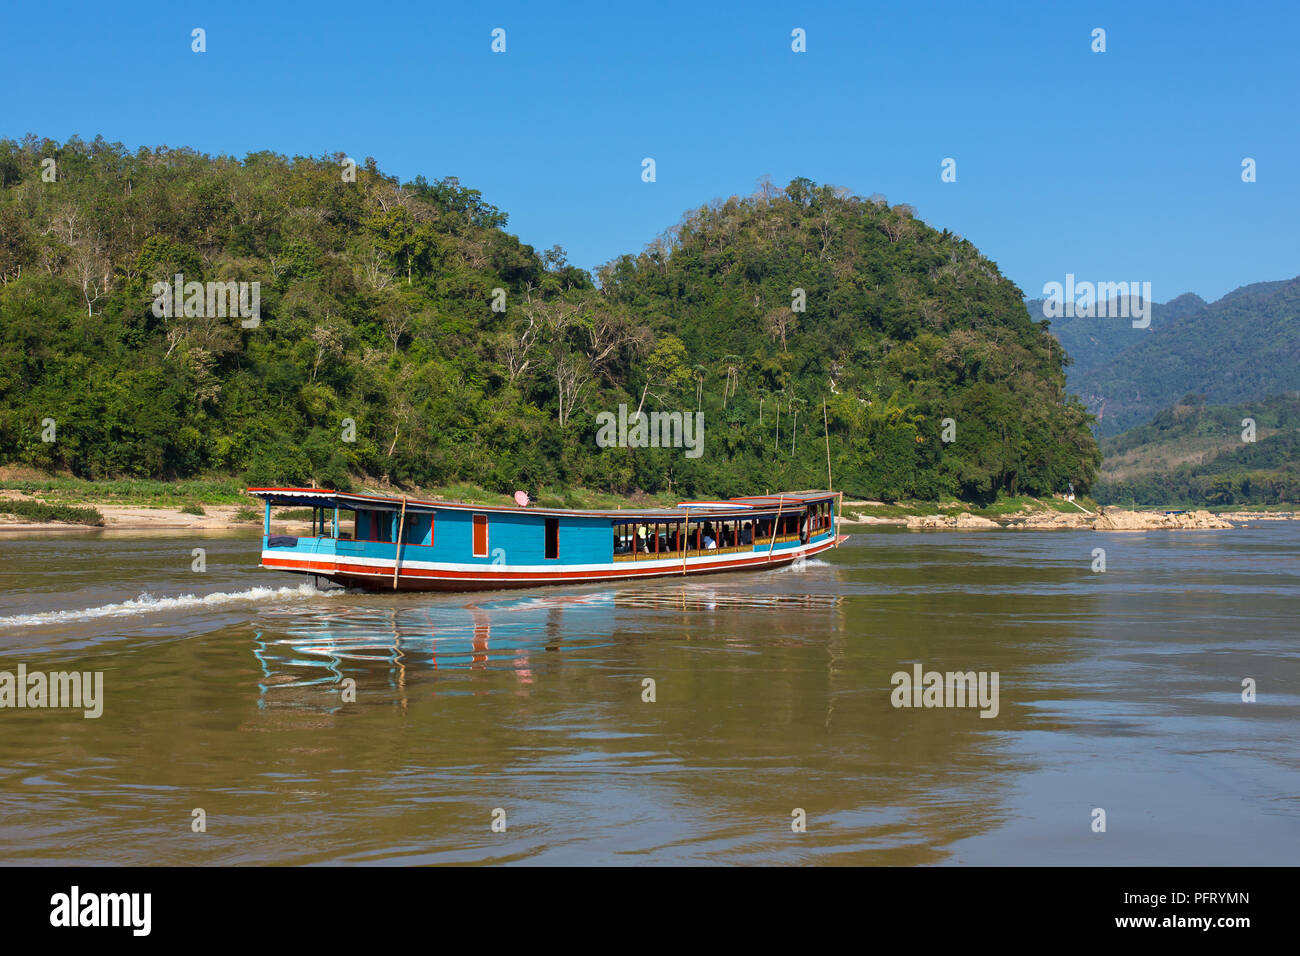 Boat on the Mekong river Laos - Stock Image